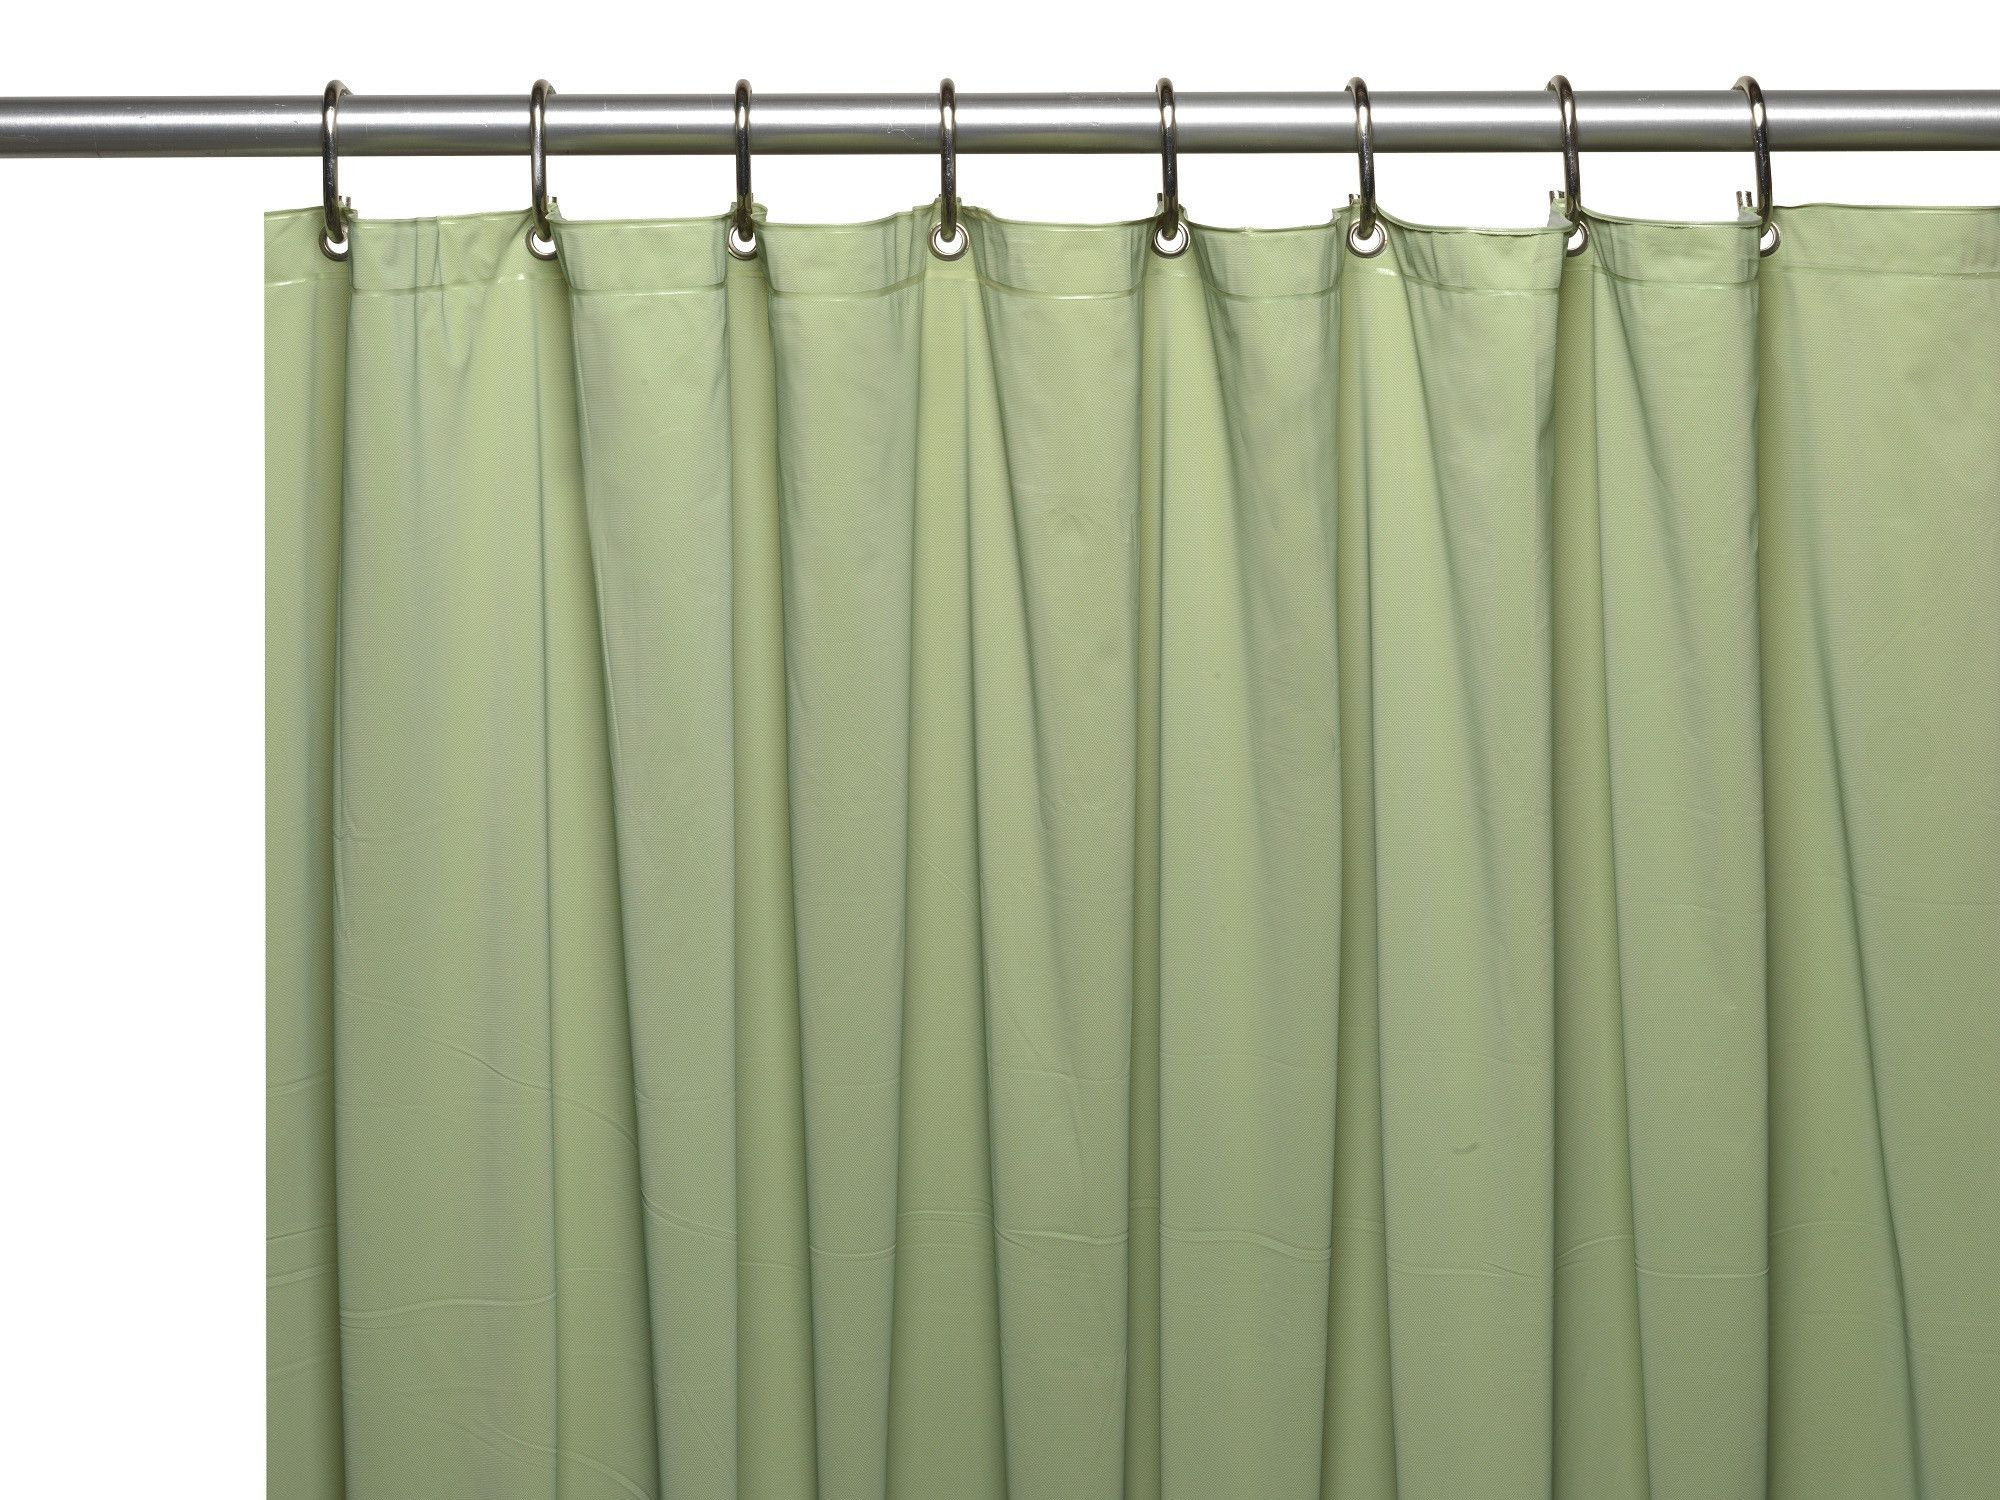 Royal Bath Heavy 4 Gauge Vinyl Shower Curtain Liner W/ Weighted Magnets    Sage